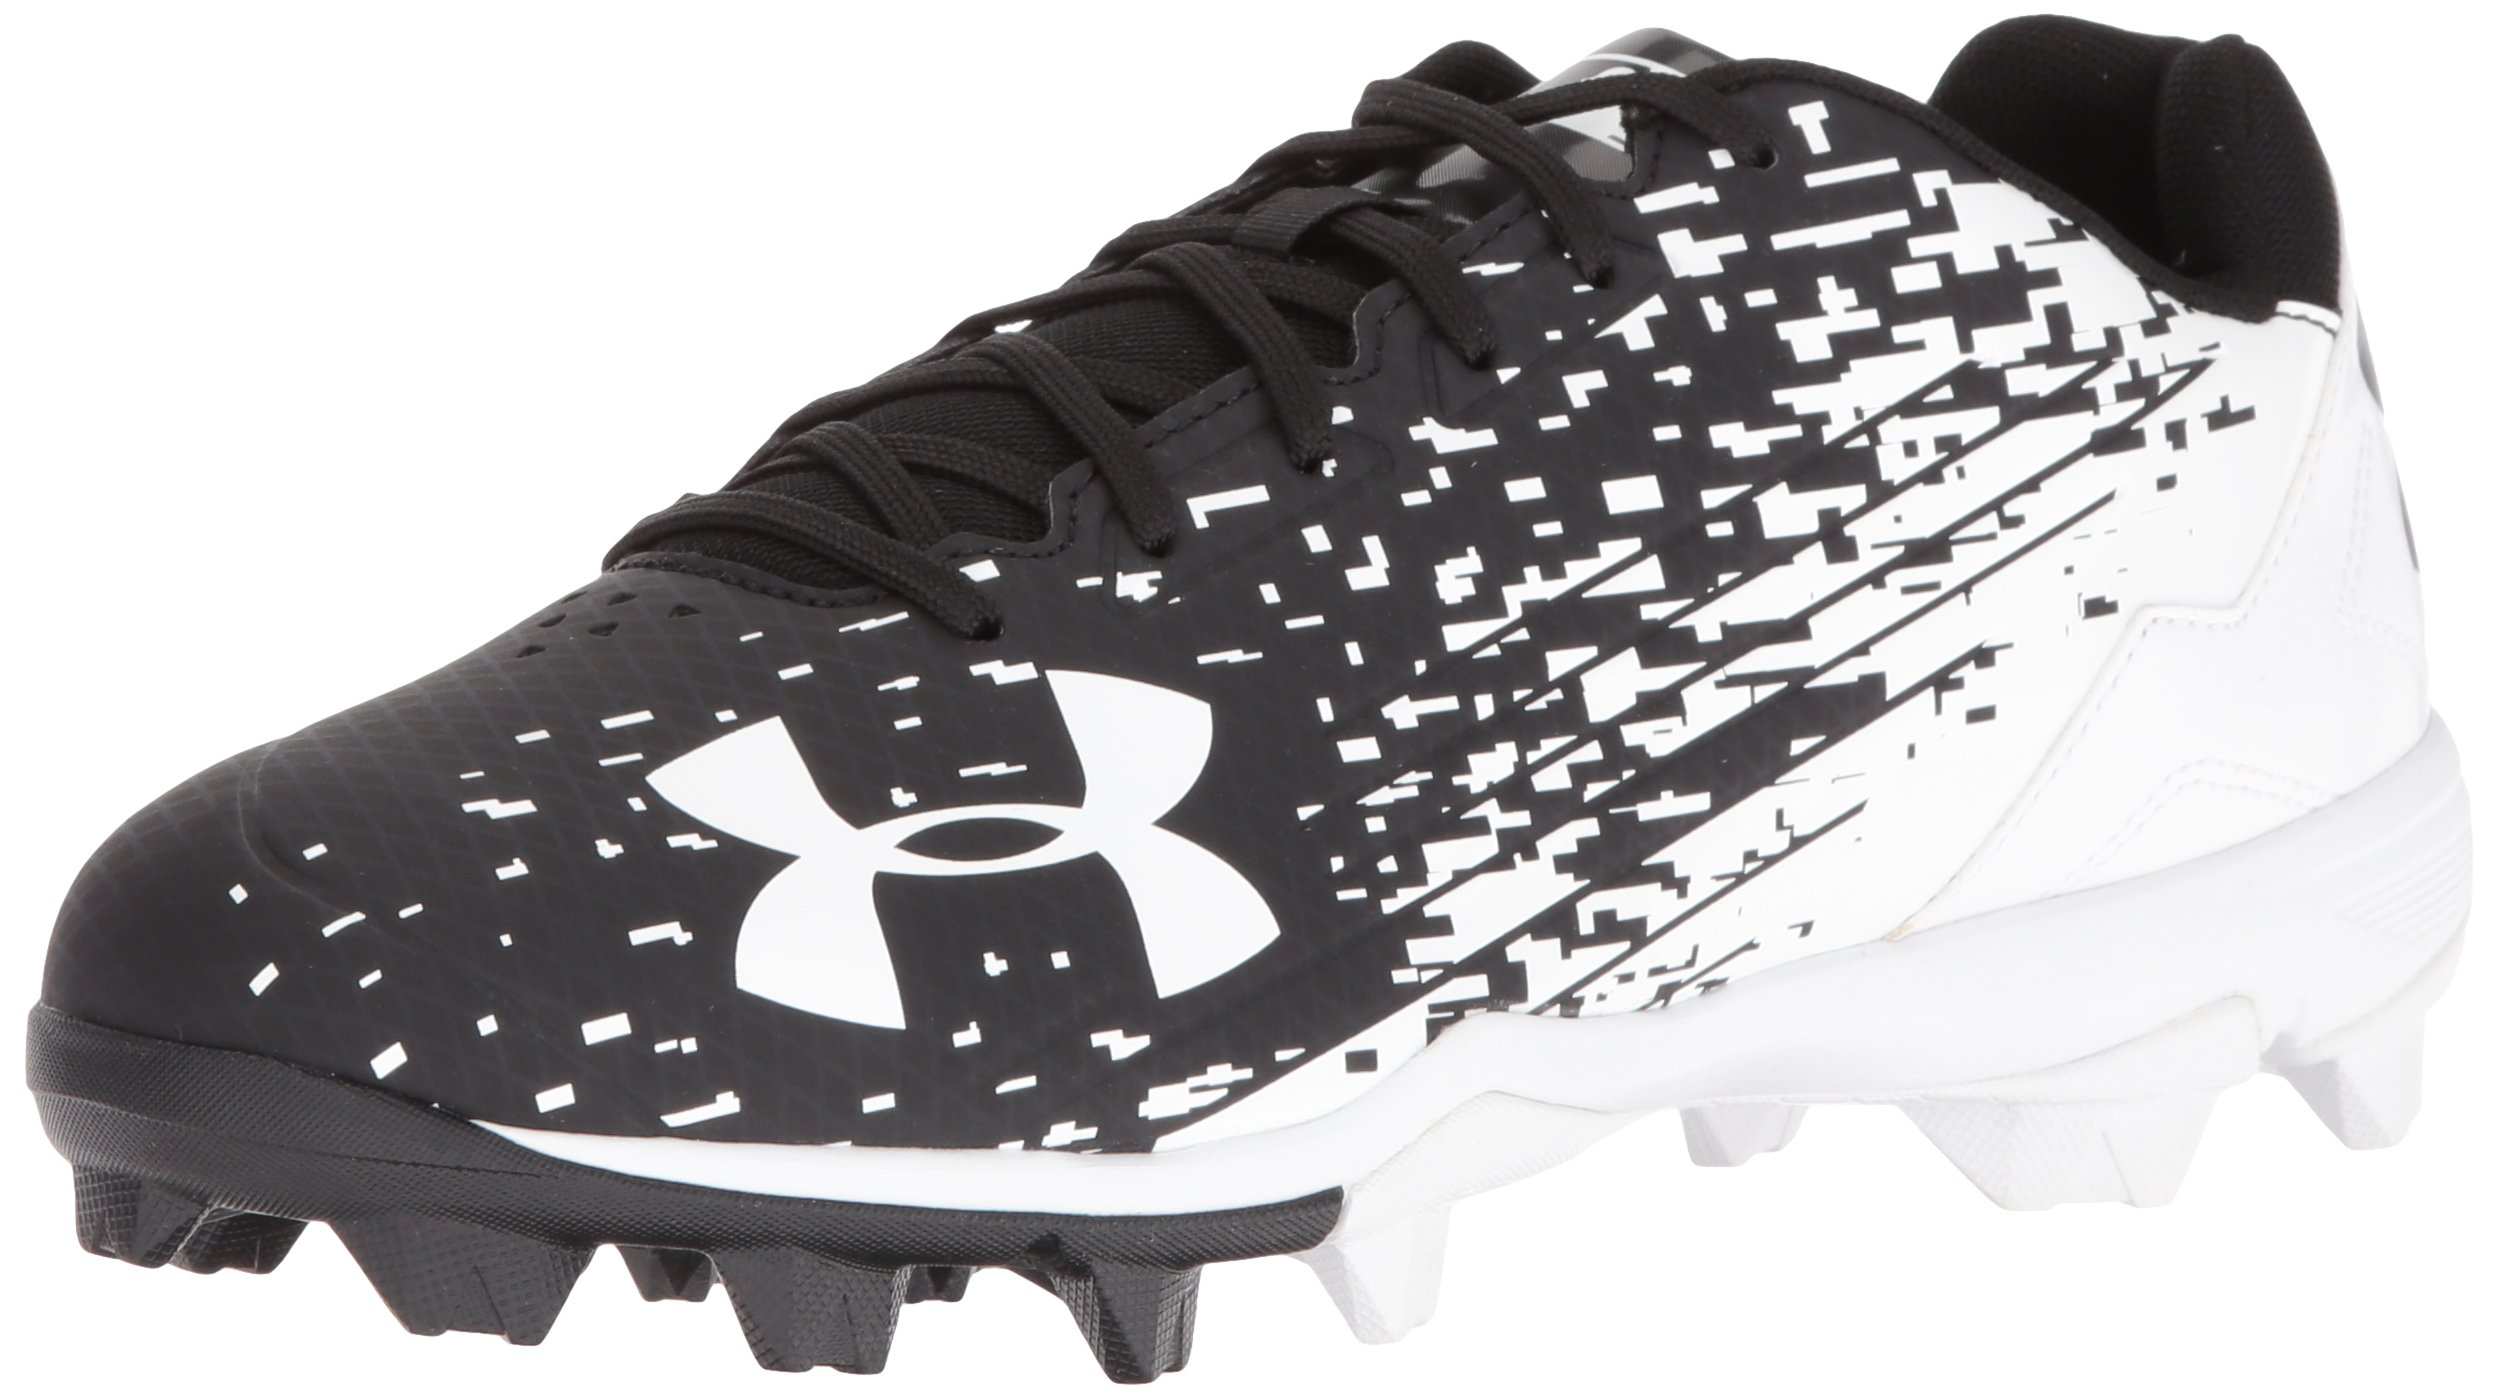 Under Armour Men's Leadoff Low RM Baseball Shoe, Black (011)/White, 6.5 by Under Armour